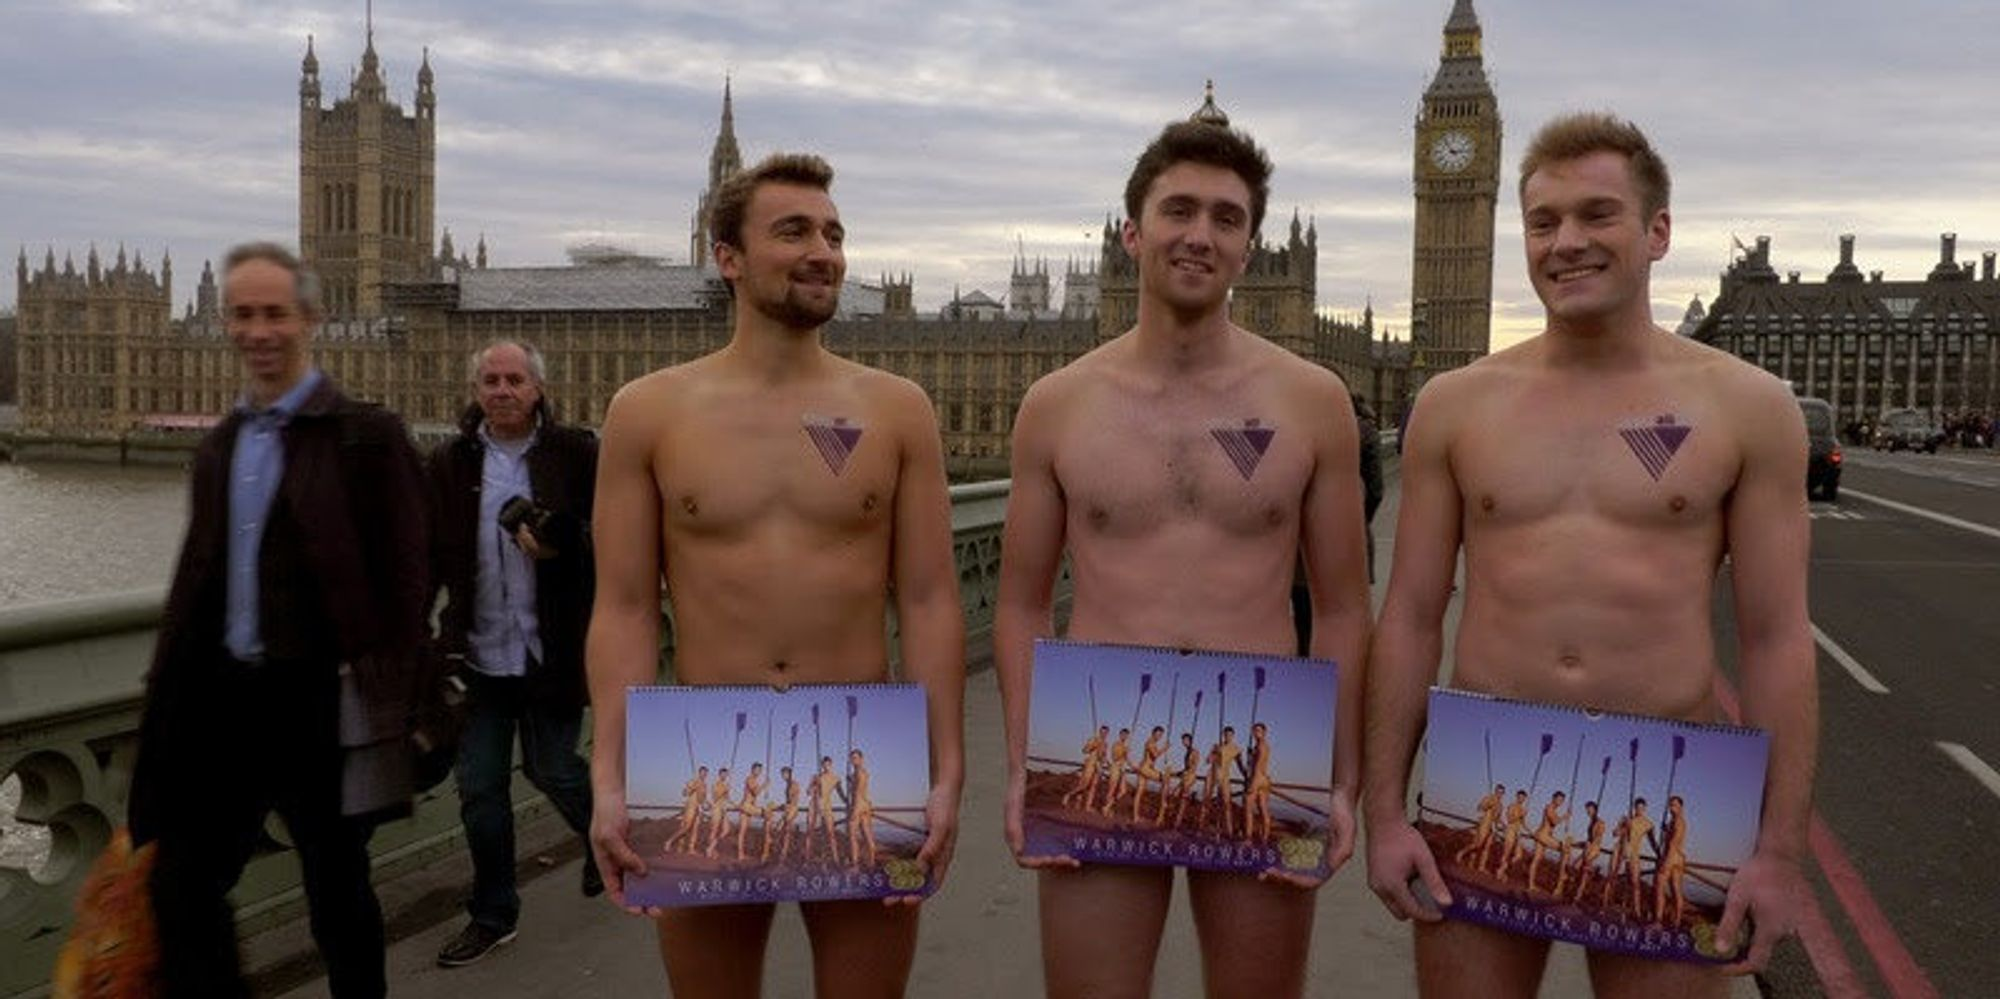 The Warwick Rowers Have A Cheeky Message For Donald Trump